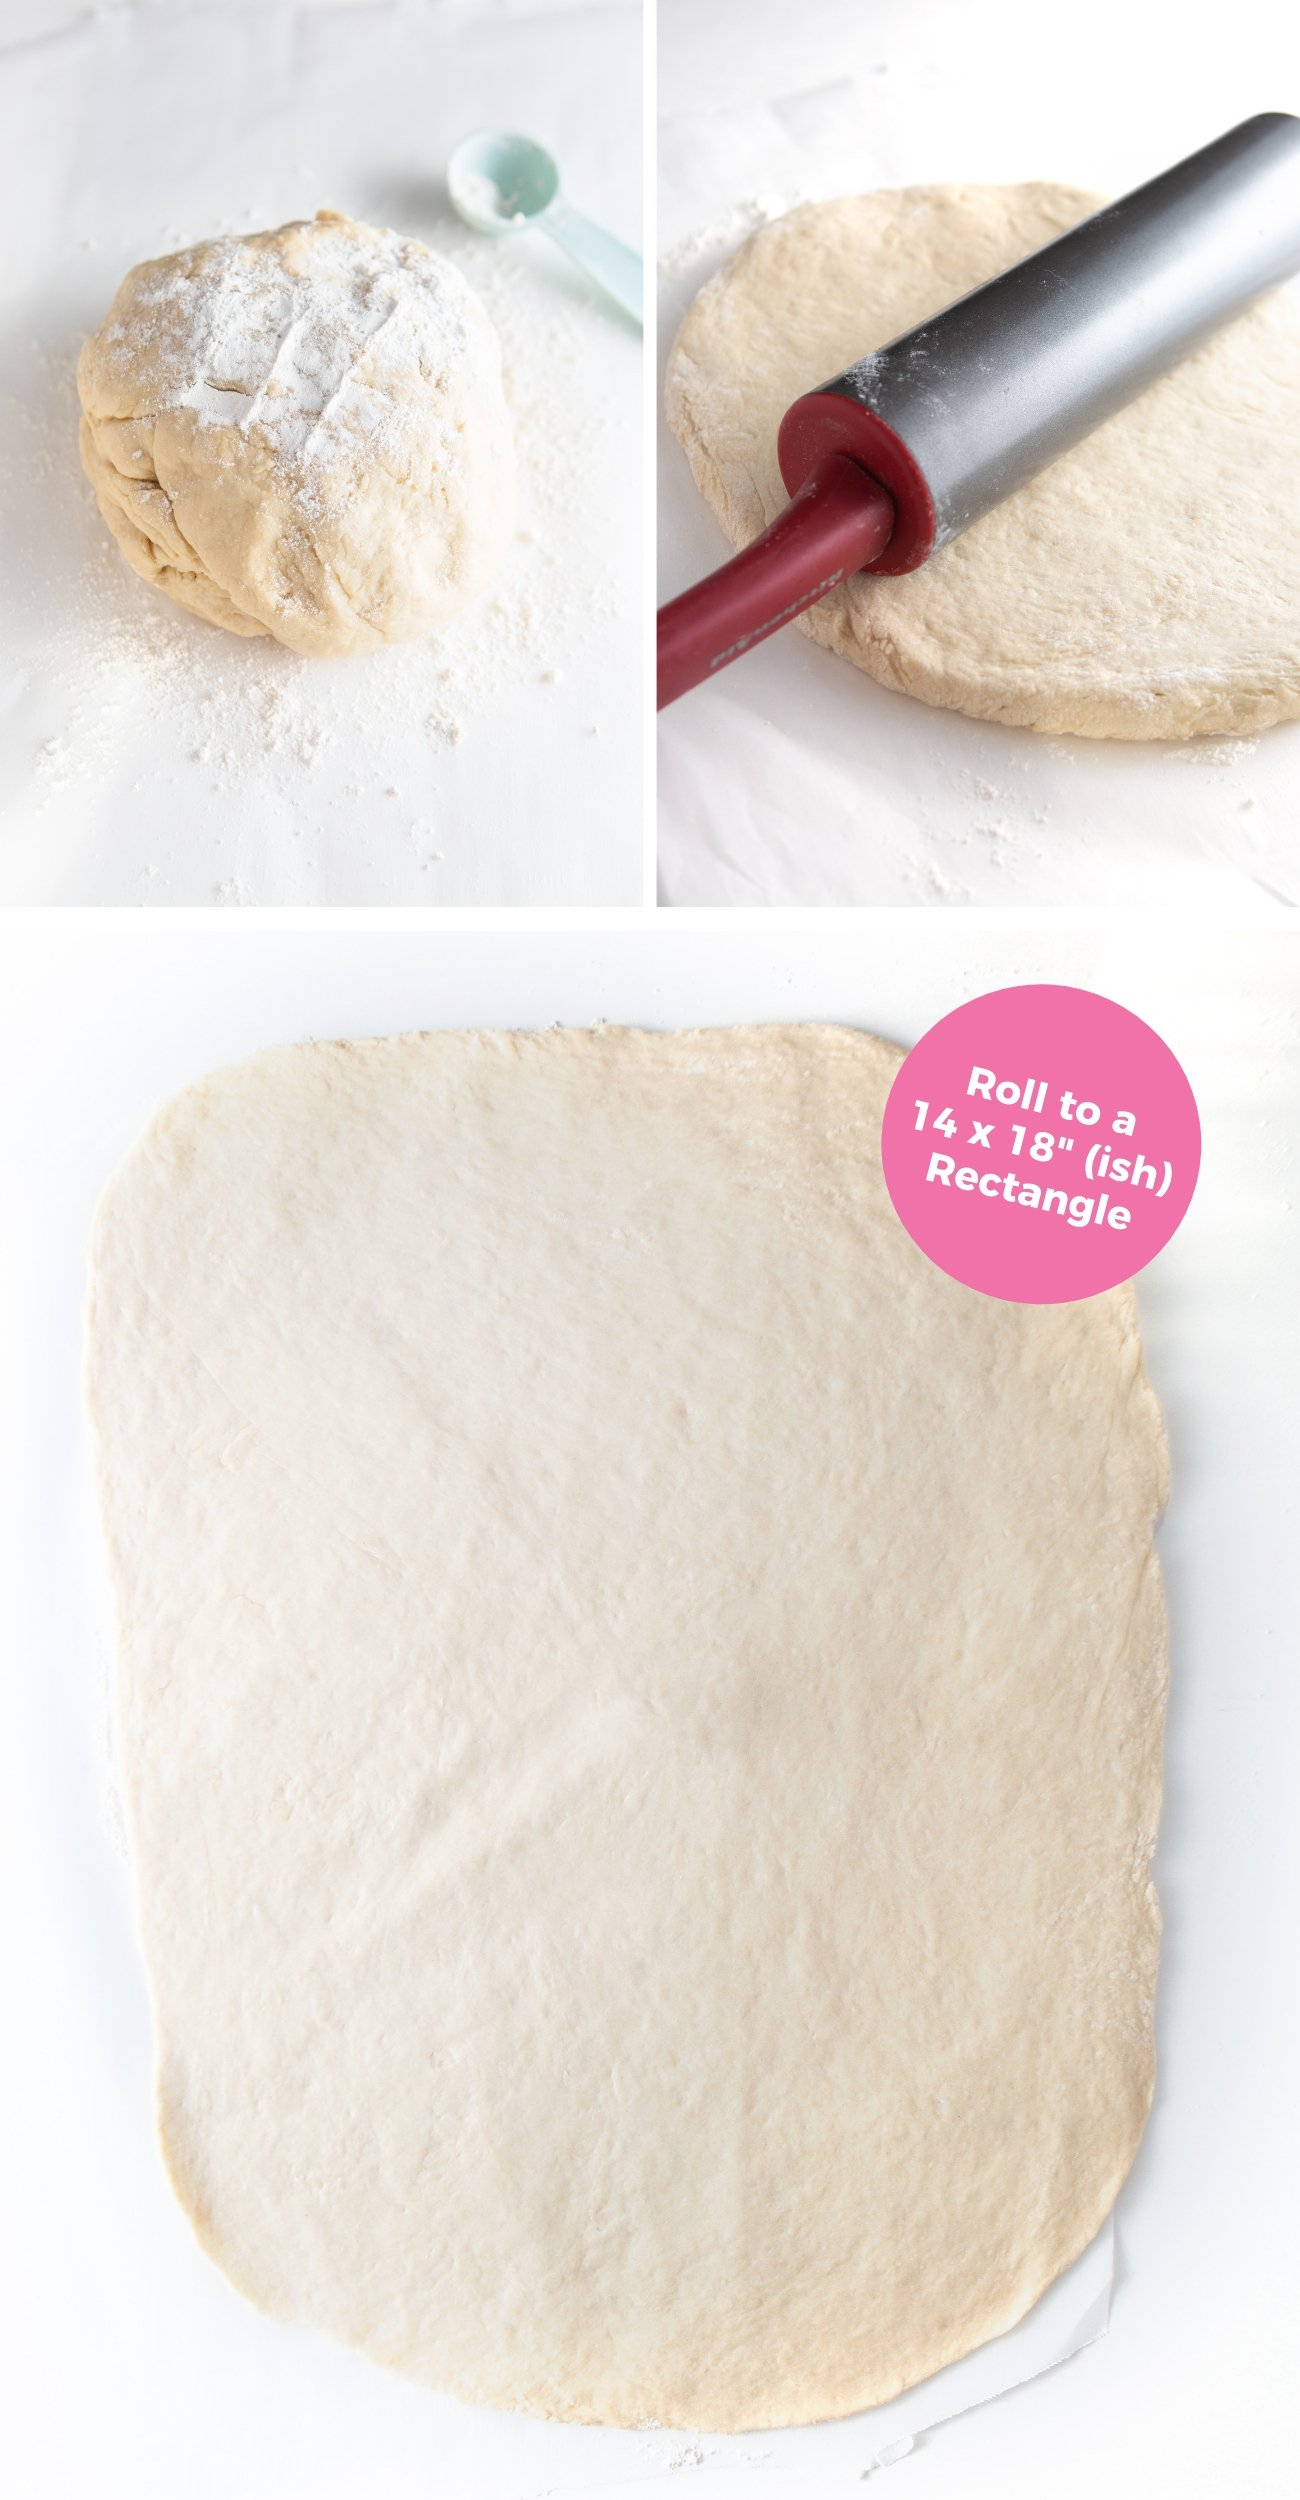 How to roll cinnamon roll dough into 14x18 rectangle sheet with rolling pin